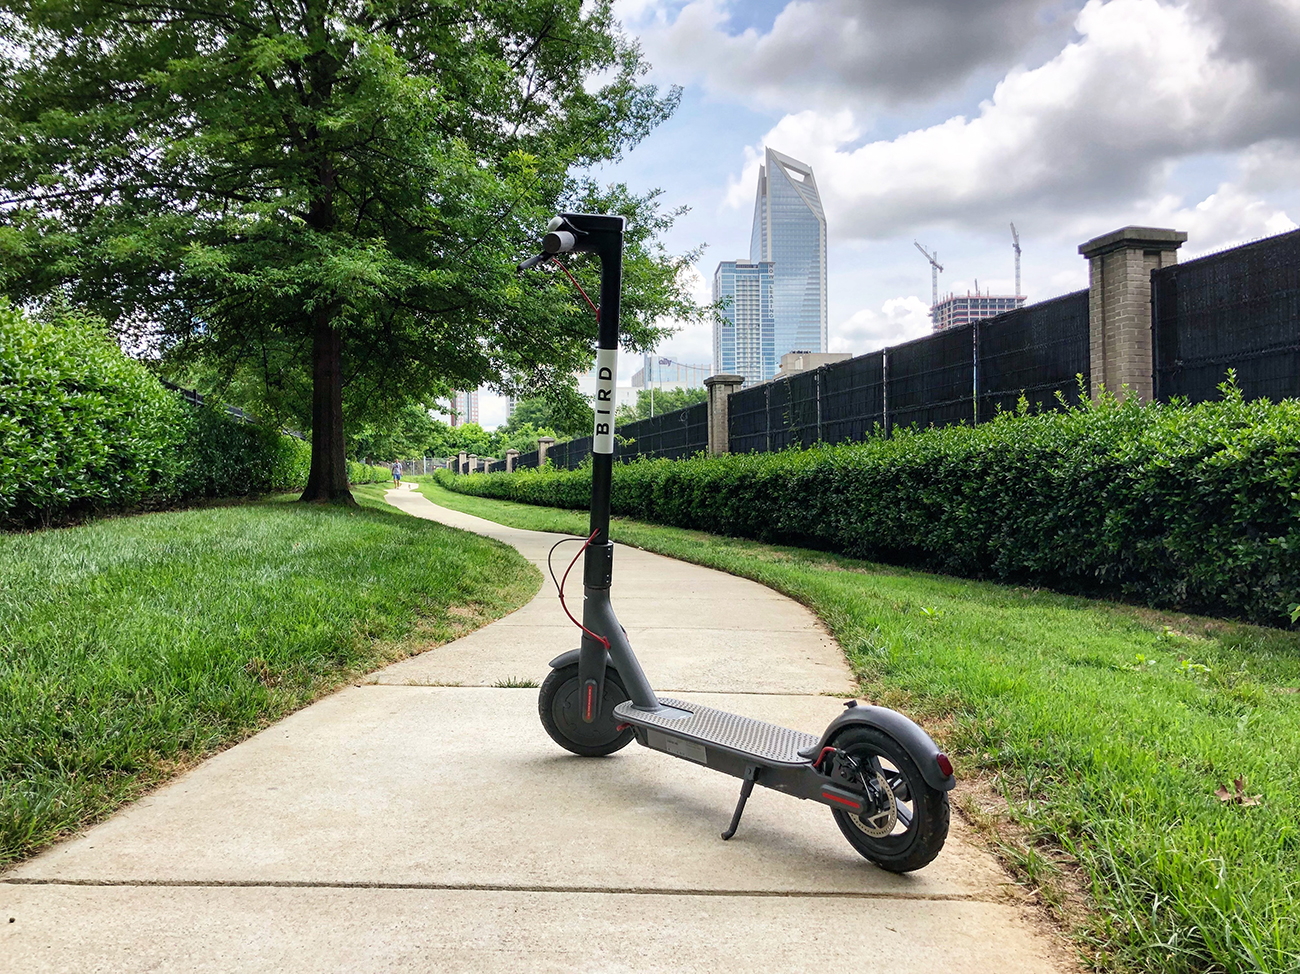 Scooters are off to a blazing start in Charlotte. 20,000+ people took total of 66,220 trips in first month